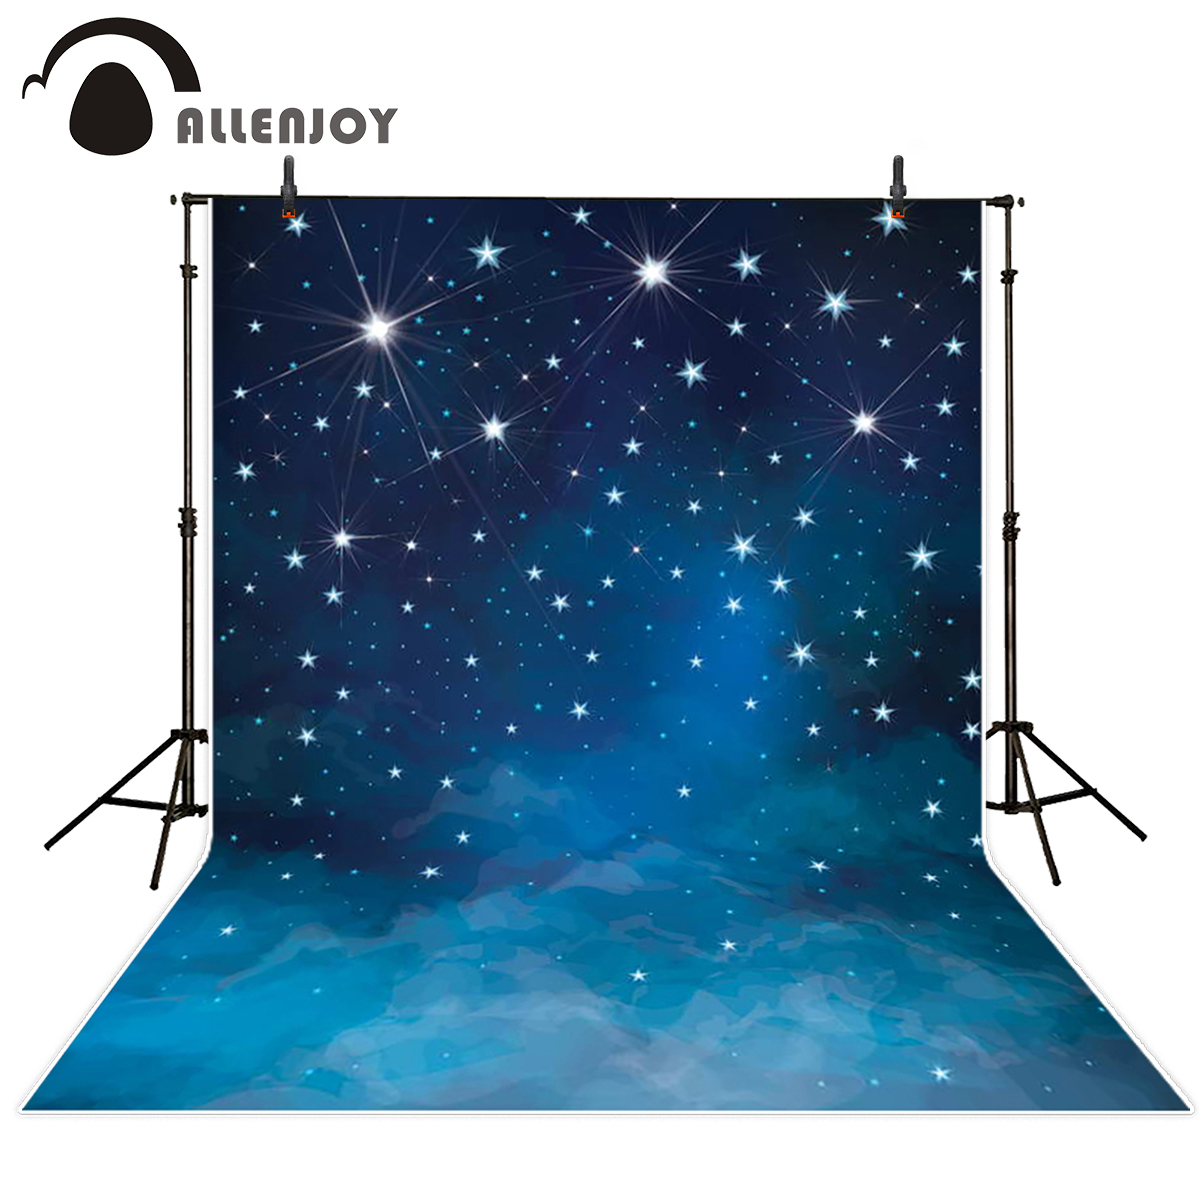 Allenjoy photographic background stars night glitter dark blue backdrops photo studio fabric newborn high quality велосипед altair city high 28 19 2015 dark blue